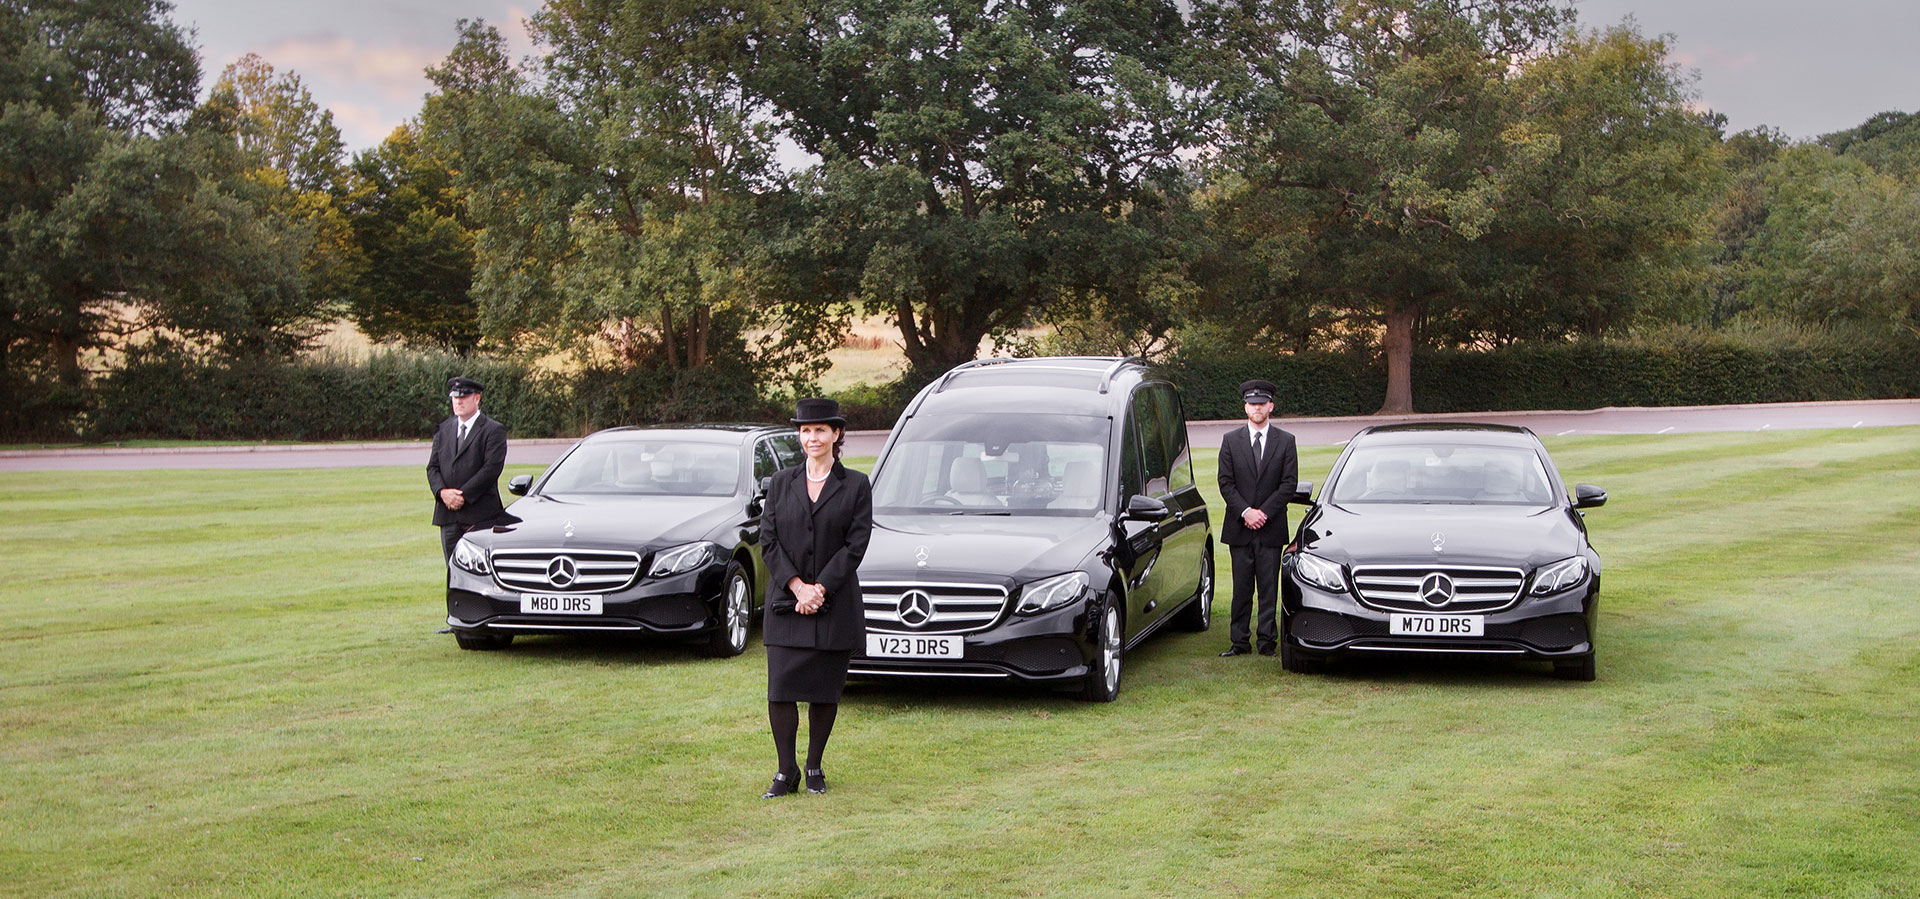 d-robinson-banner-image-three-funeral-vehicles